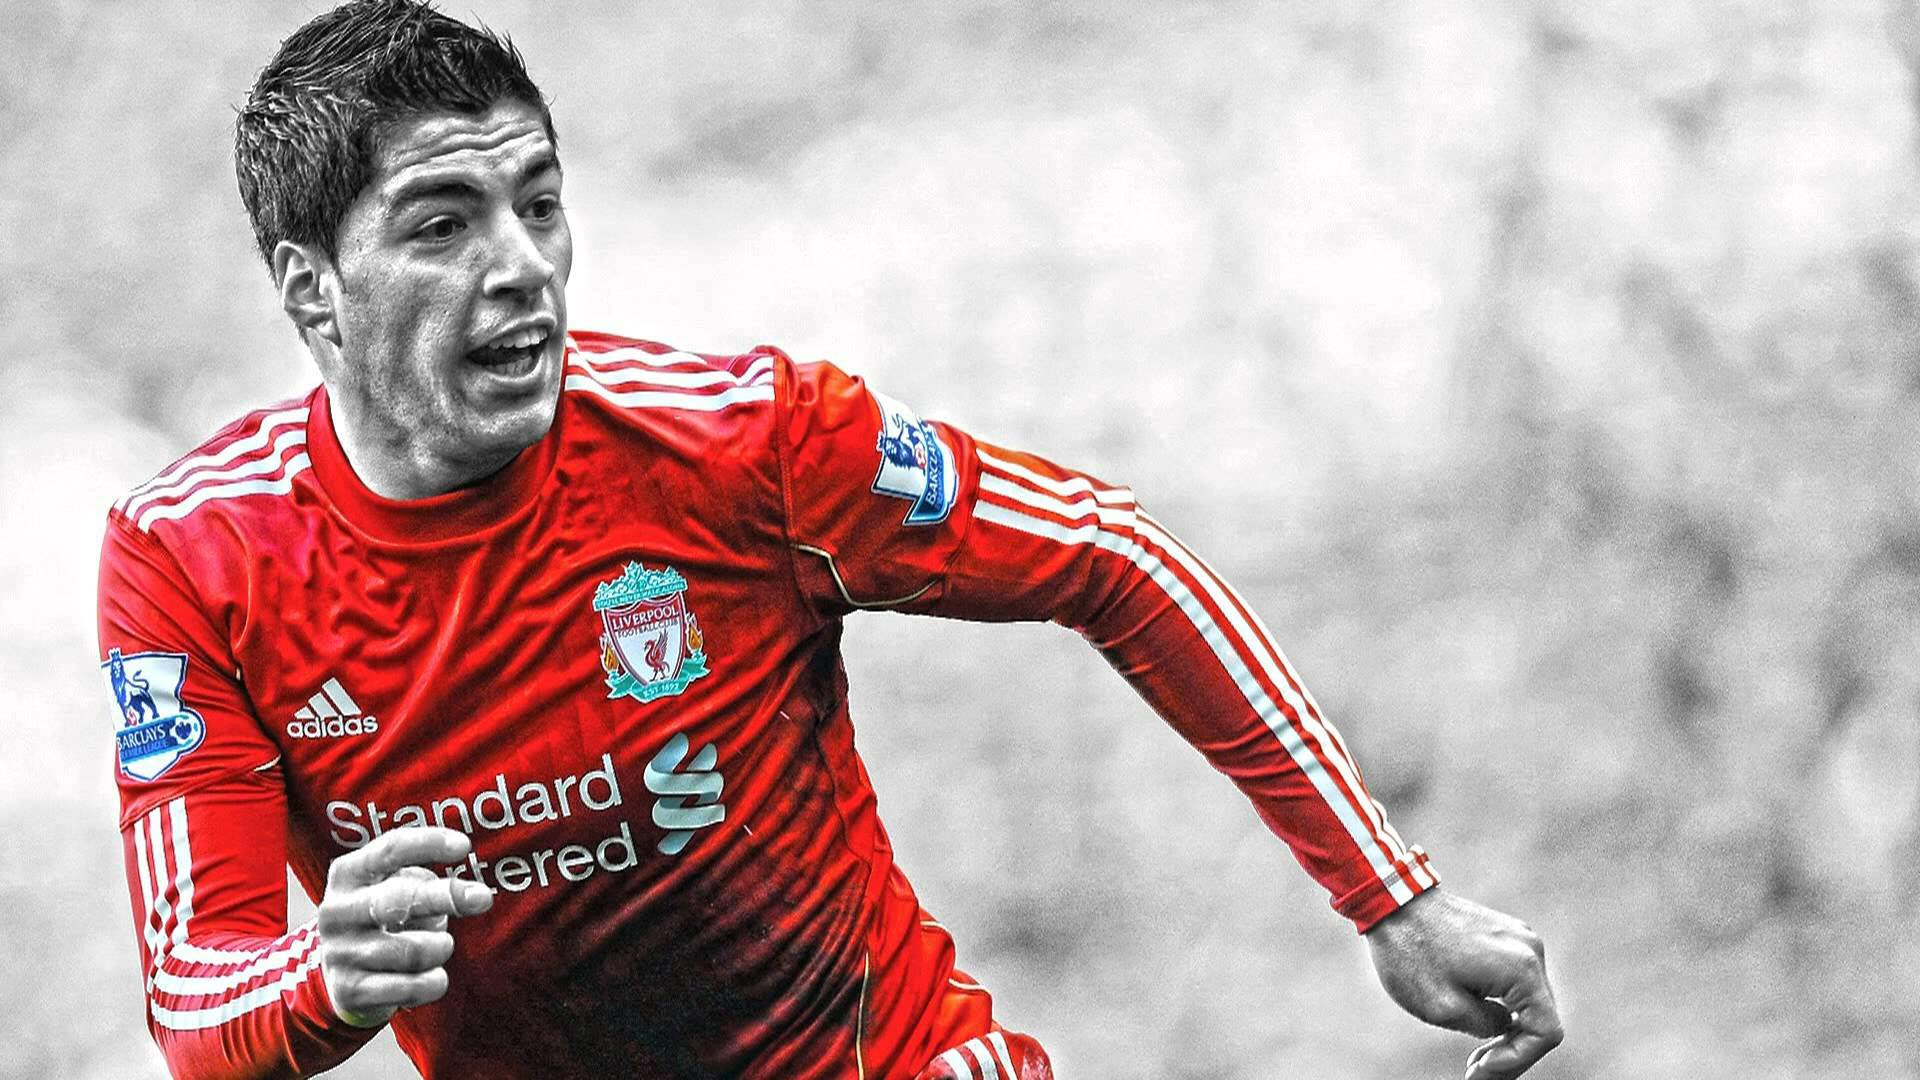 Luis suarez wallpapers high resolution and quality download - Suarez liverpool wallpaper ...